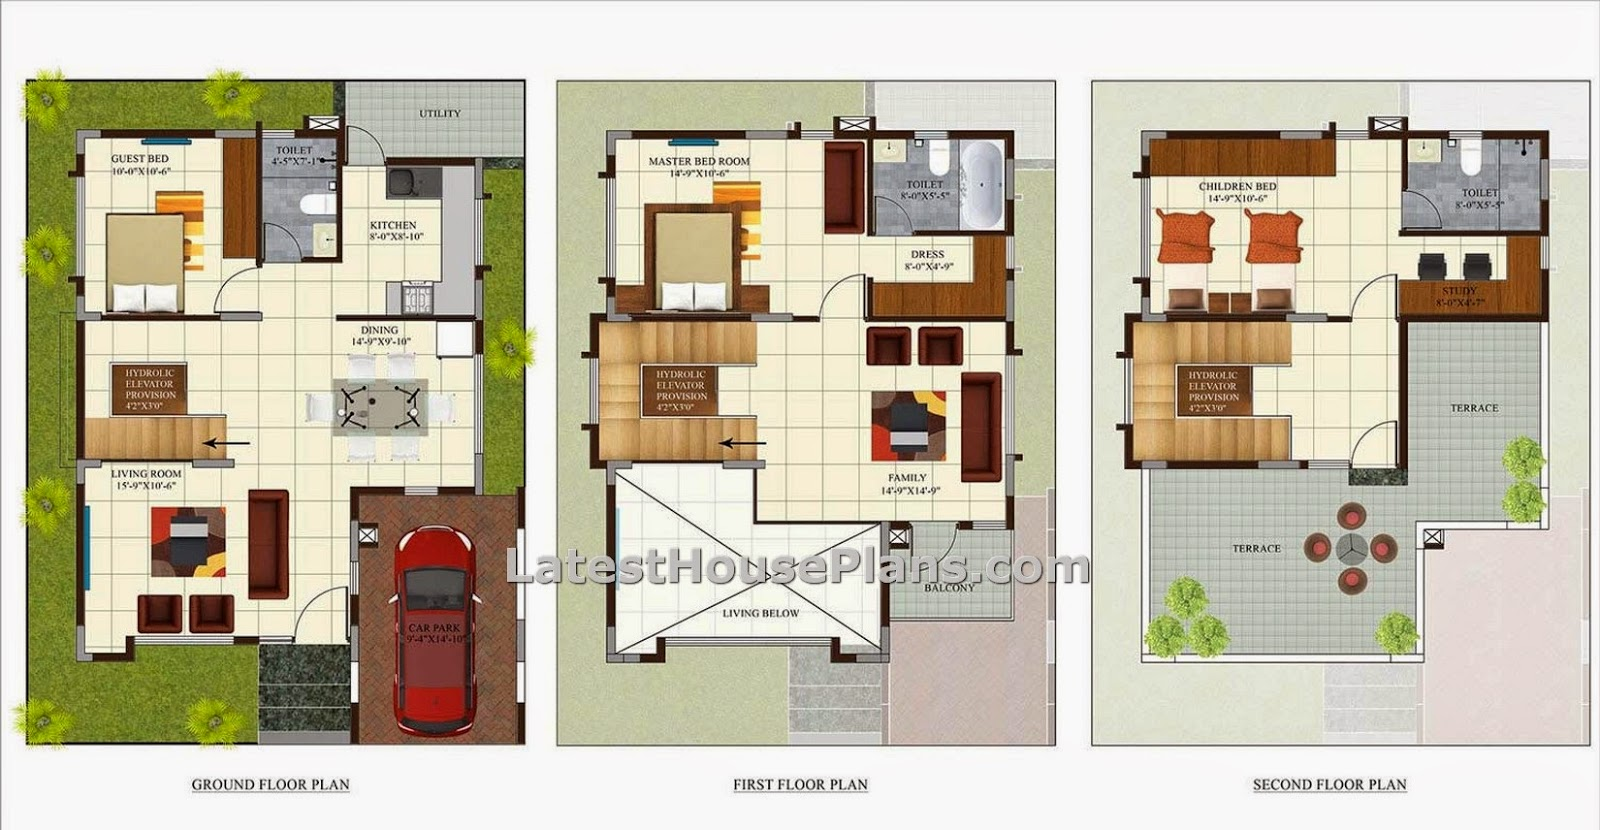 Three Bedroom Luxury Villa House Plan In Area Of 1850 Sq